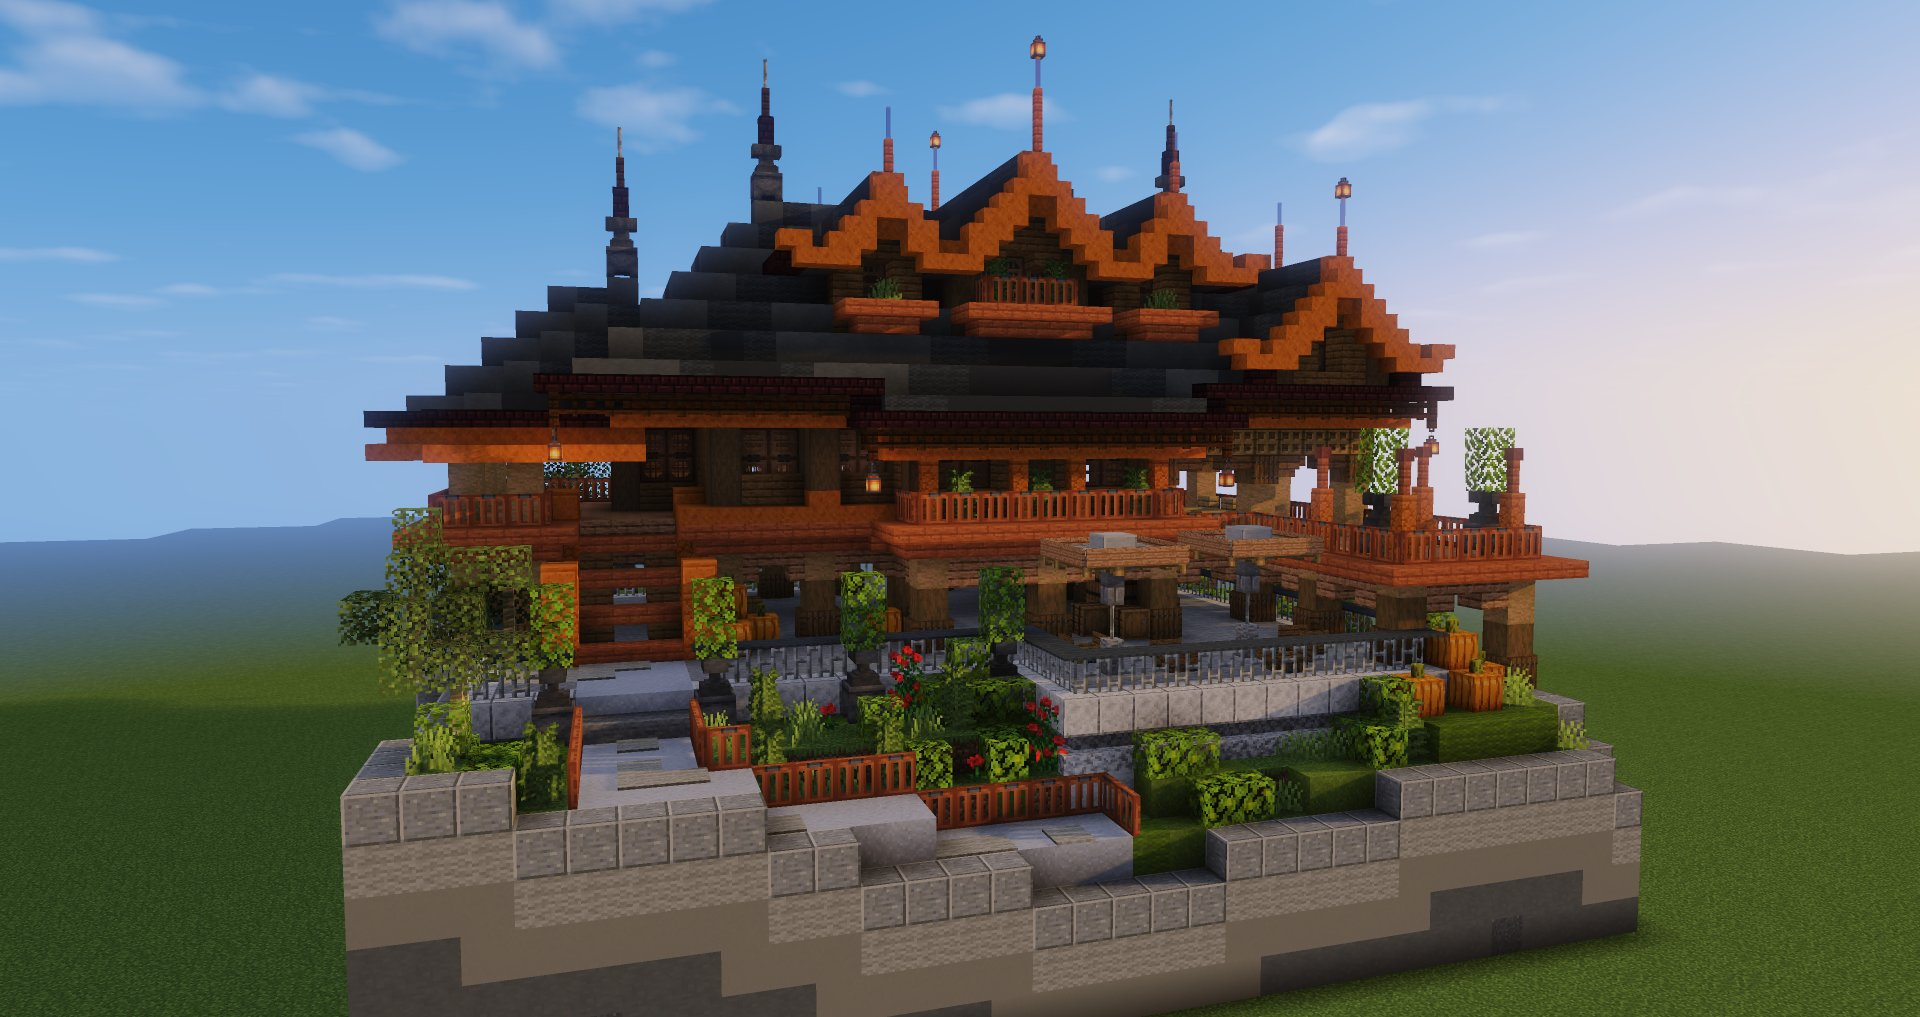 Pearlescentmoon Sur Twitter Fixed Up The Minecraft Build I Made For Day 1 7 In Abuildaday Just Needed To Sit Down And Give It More Time For Detailing What Do